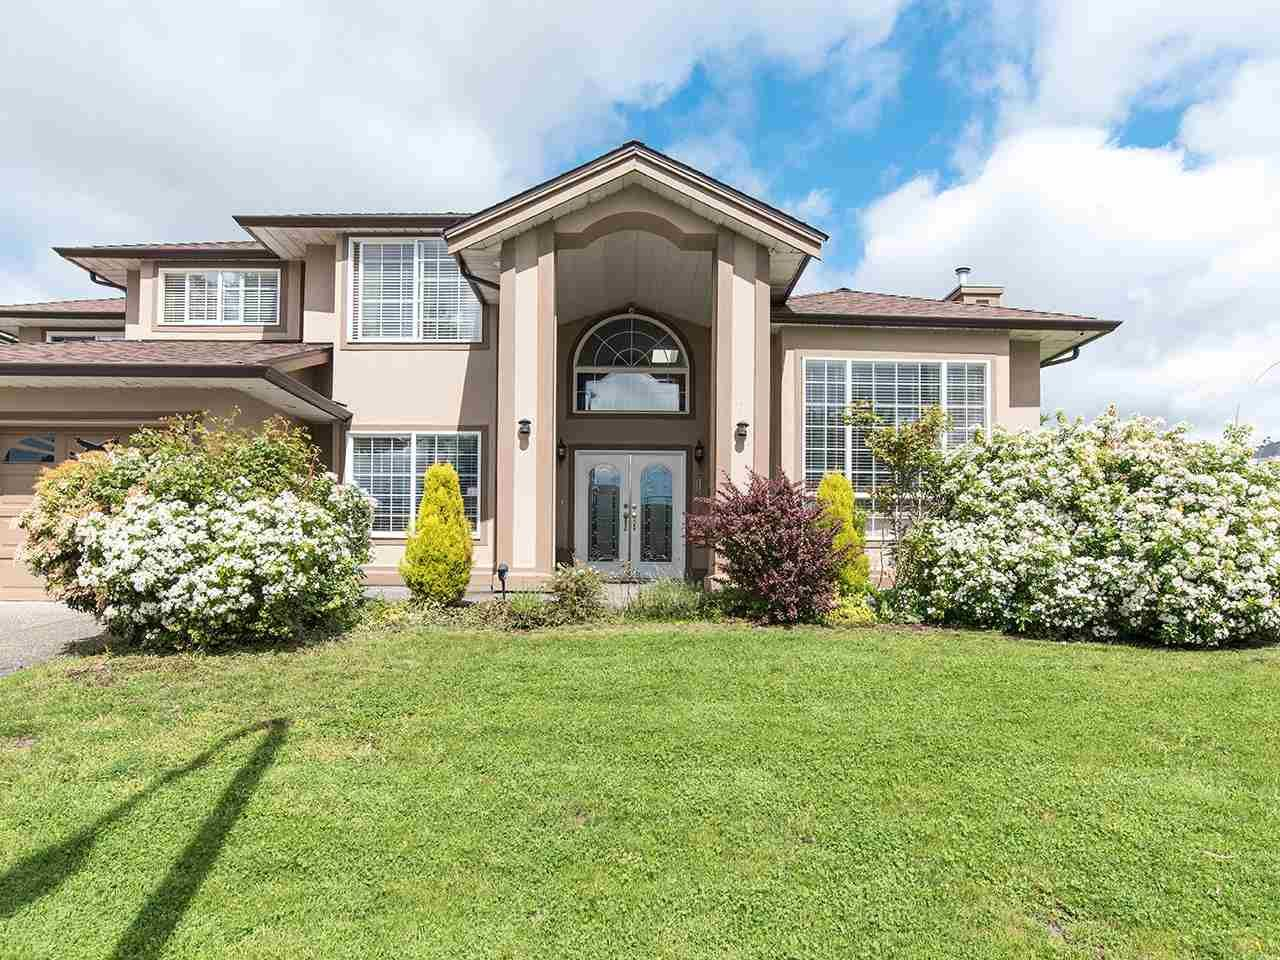 """Main Photo: 14287 69A Avenue in Surrey: East Newton House for sale in """"East Newton"""" : MLS®# R2574011"""